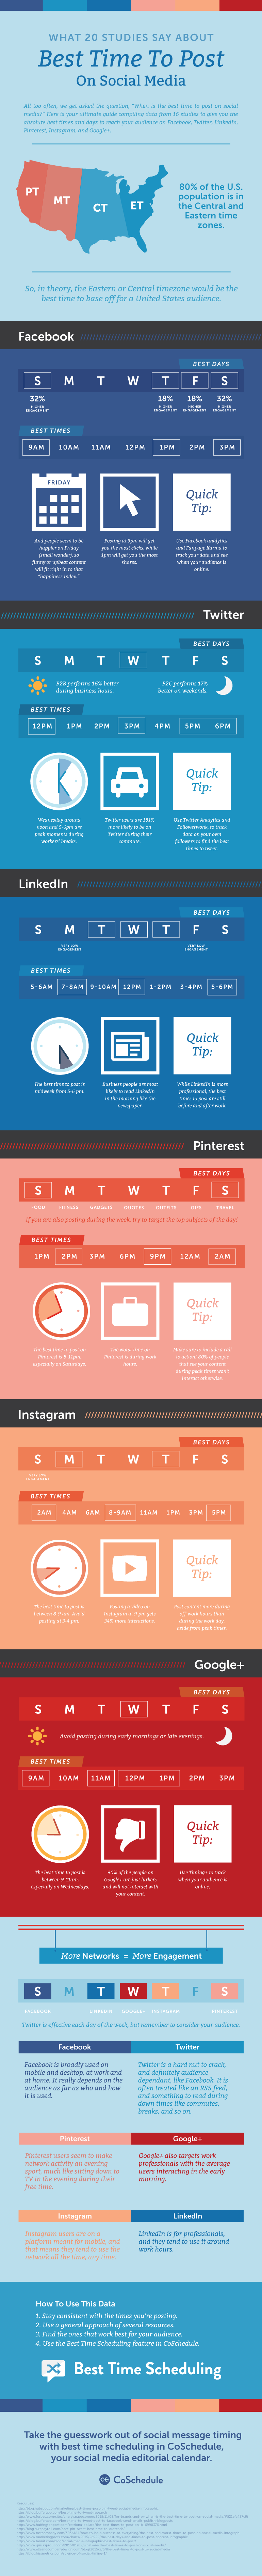 best times to send posts in your social networks